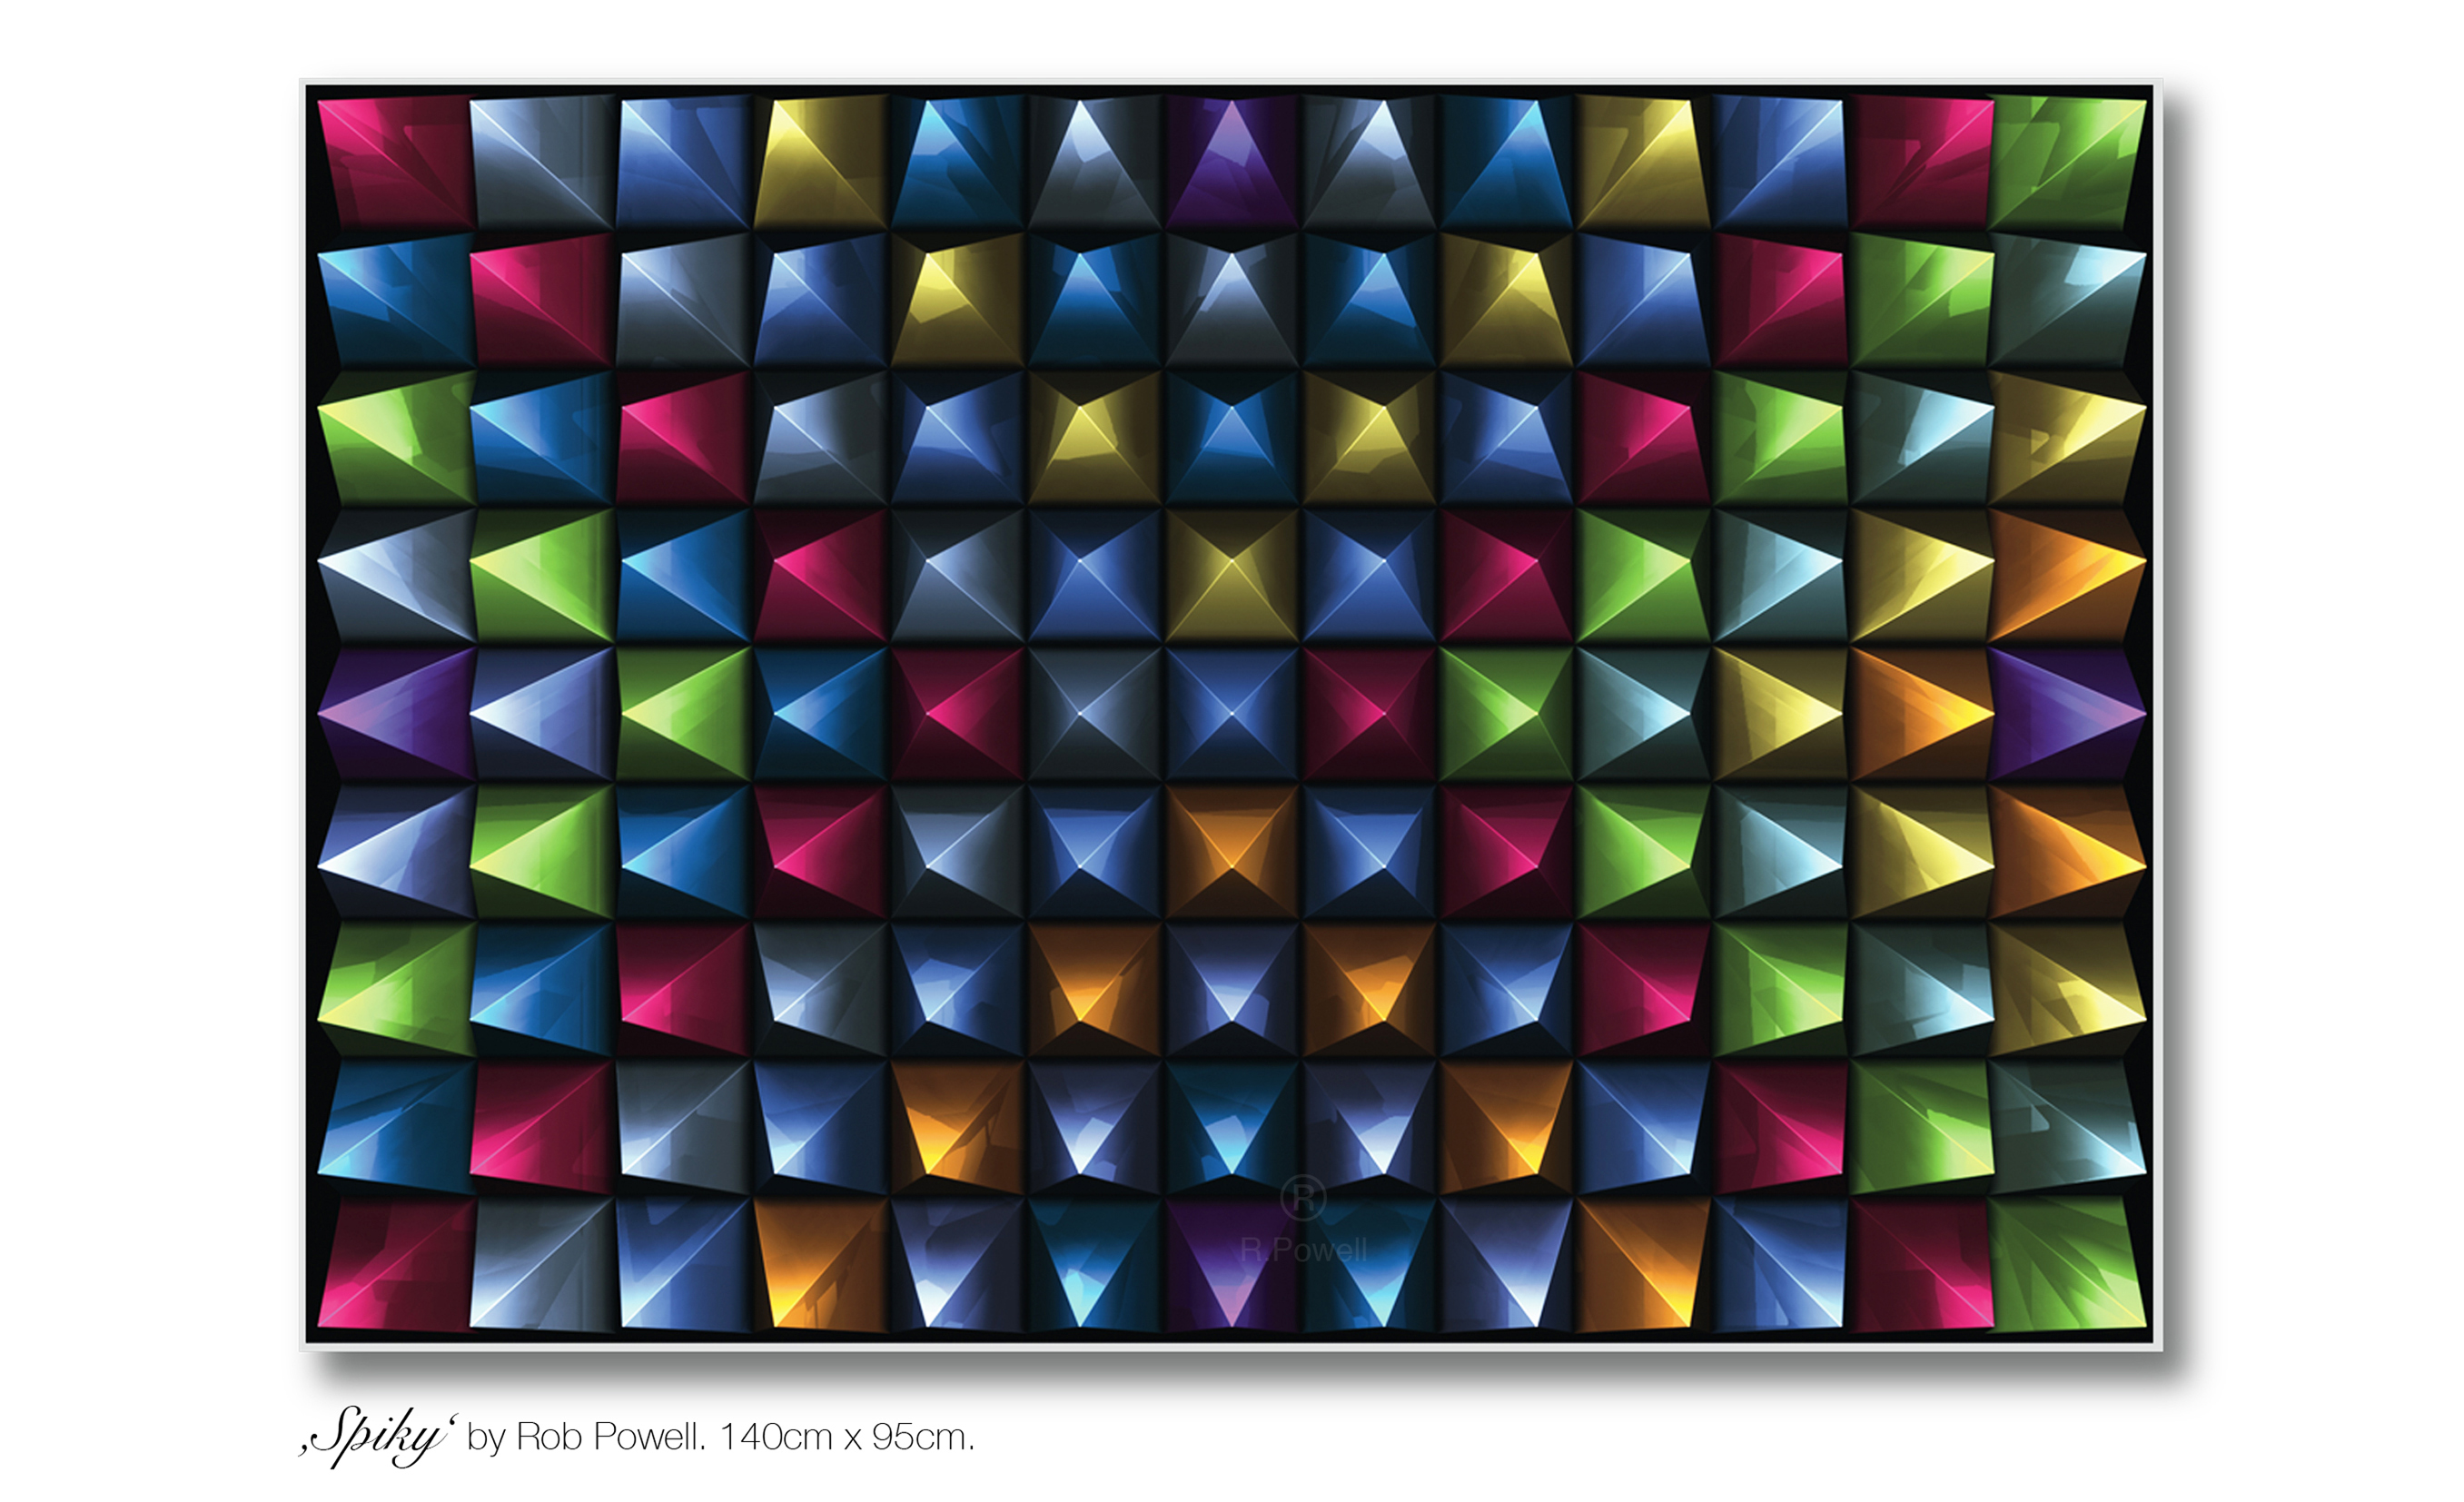 Spiky artwork by Rob Powell - art listed for sale on Artplode